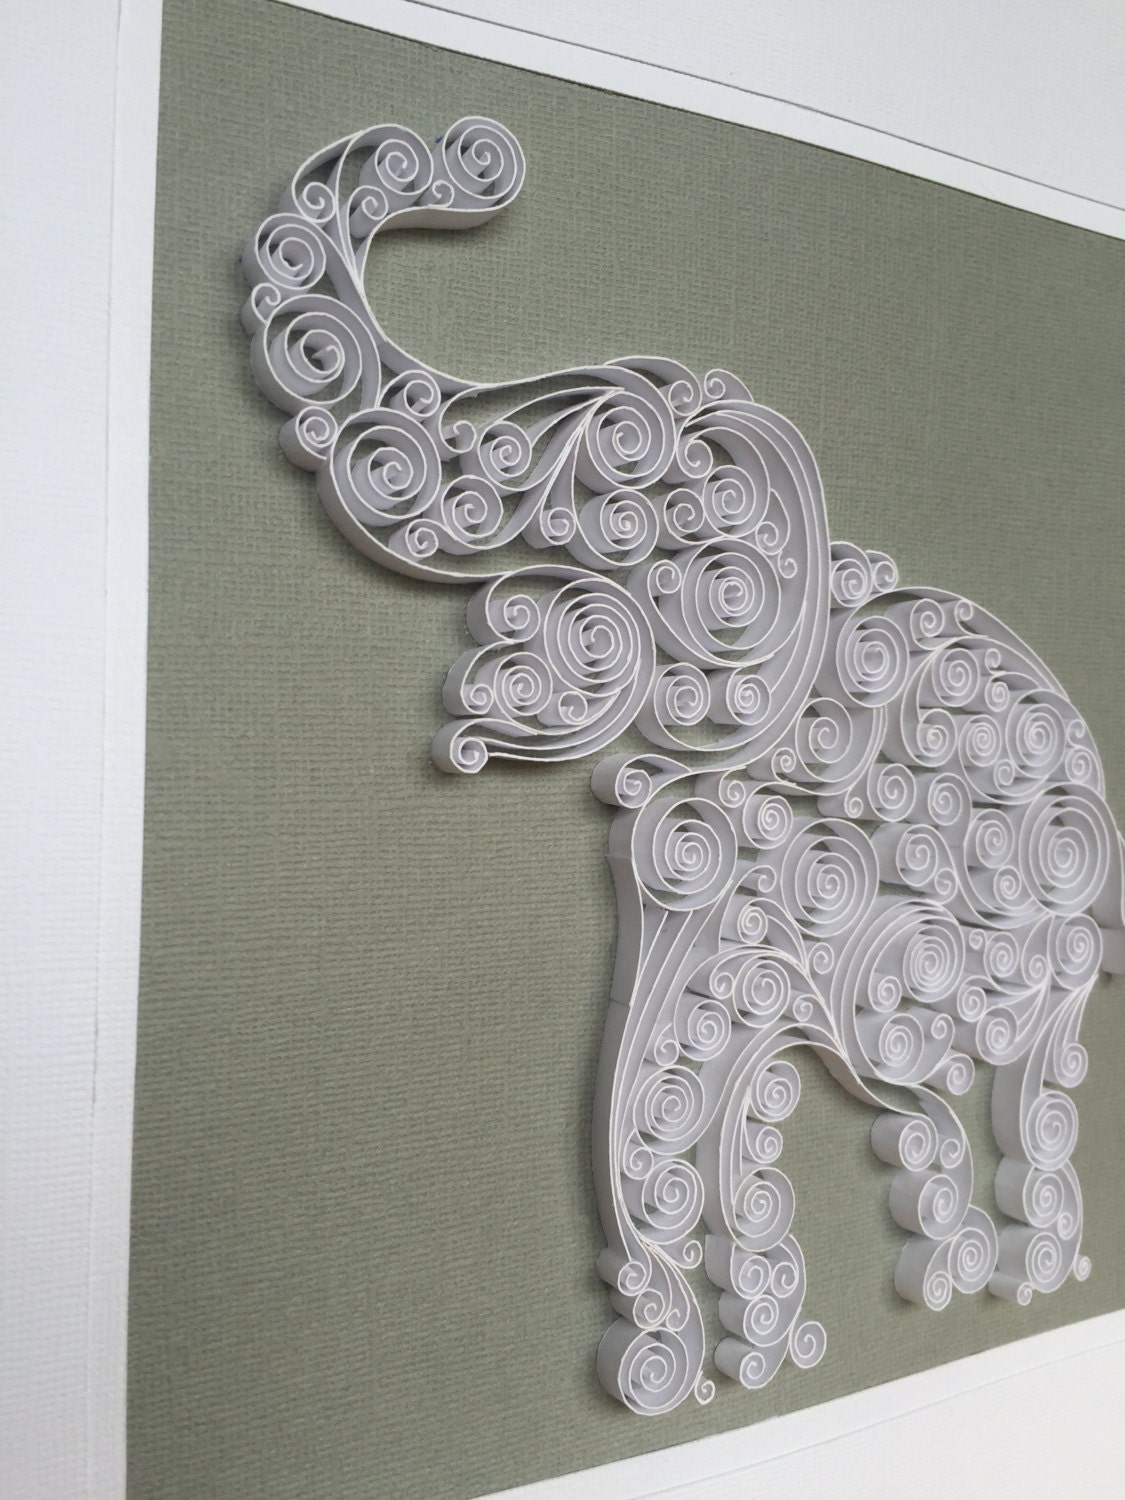 Quilled Elephant Silhouette Paper Art